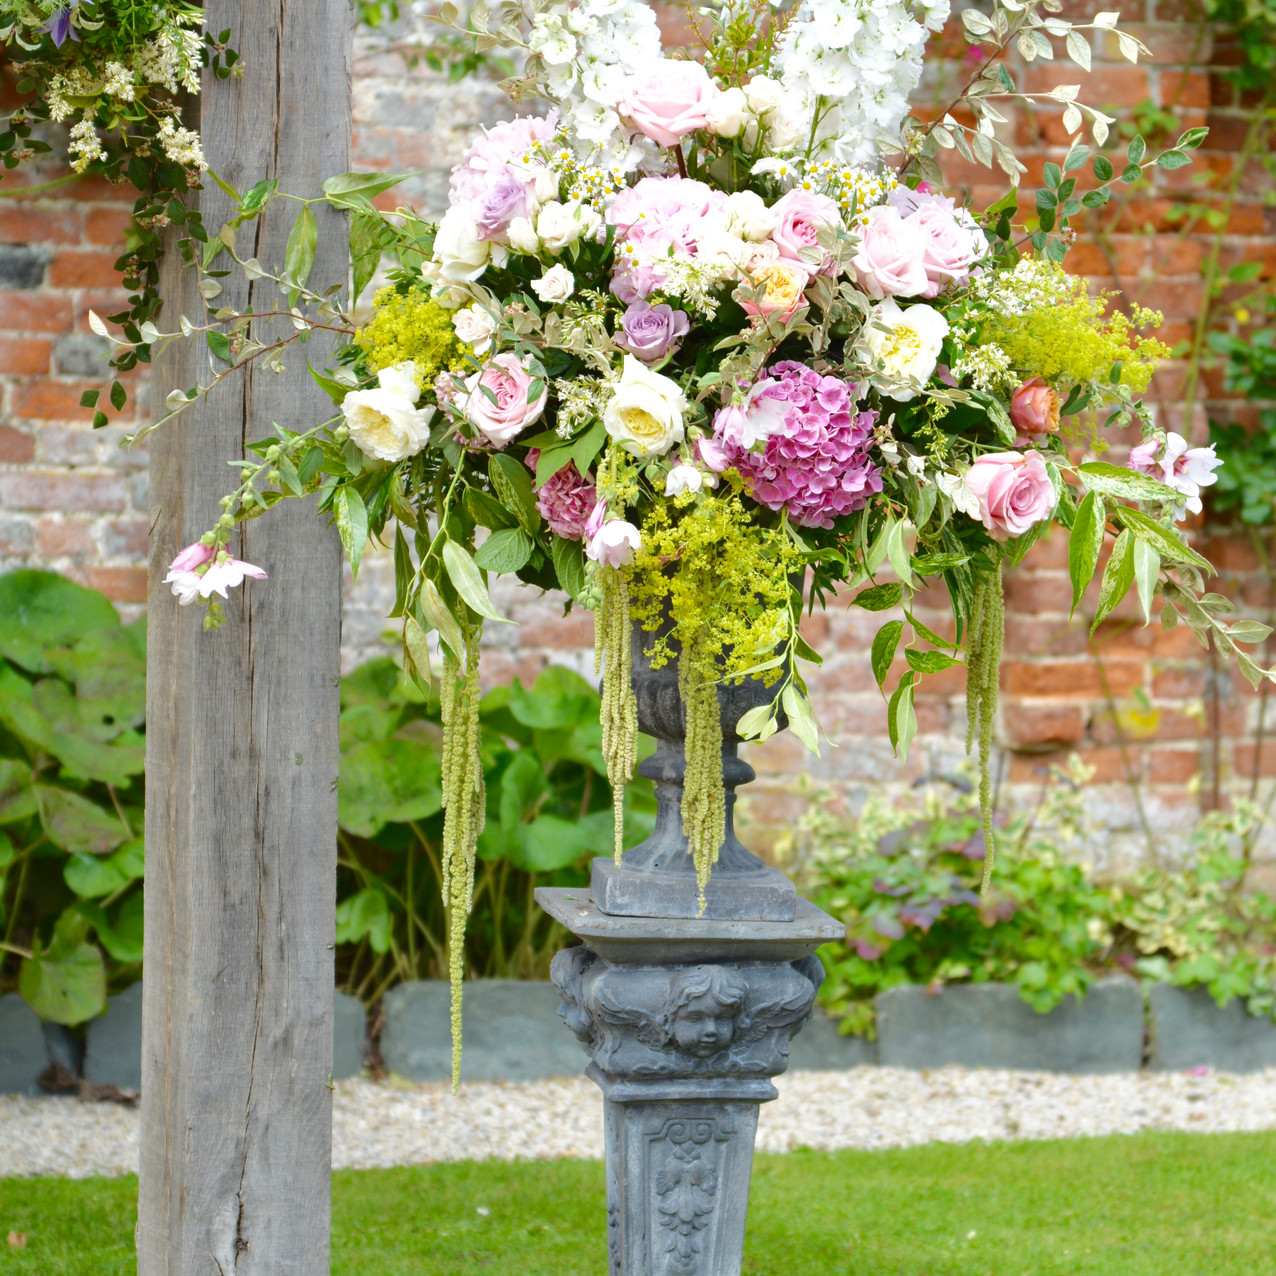 Classical Pedestal & Urn, complete with an arrangement of seasonal summer flowers and foliage. Delphinium, roses, amaranthus, hydrangeas